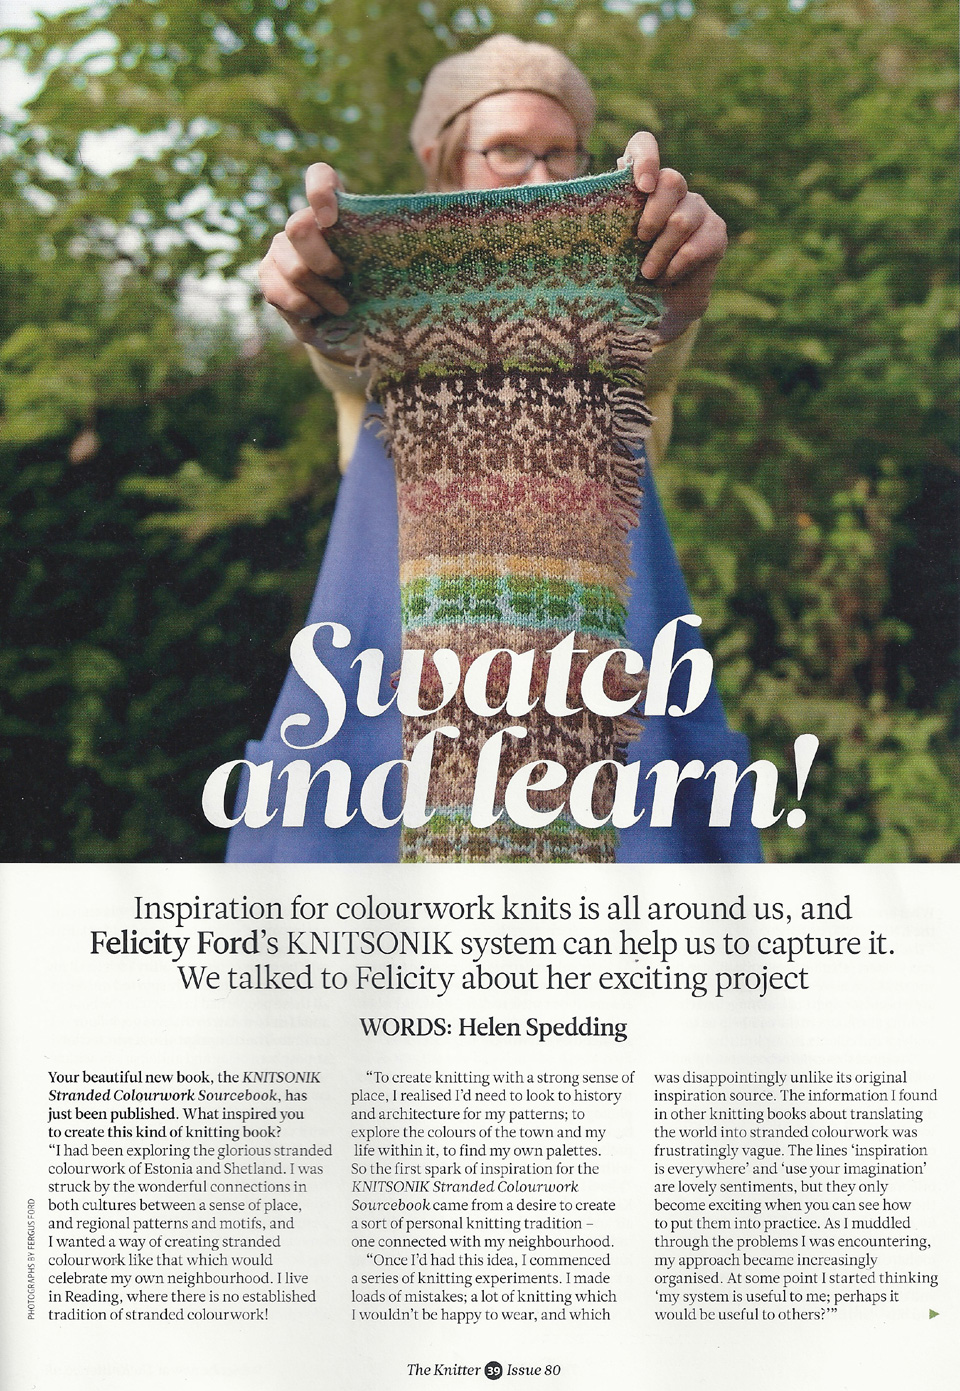 The Knitter magazine, January 2015